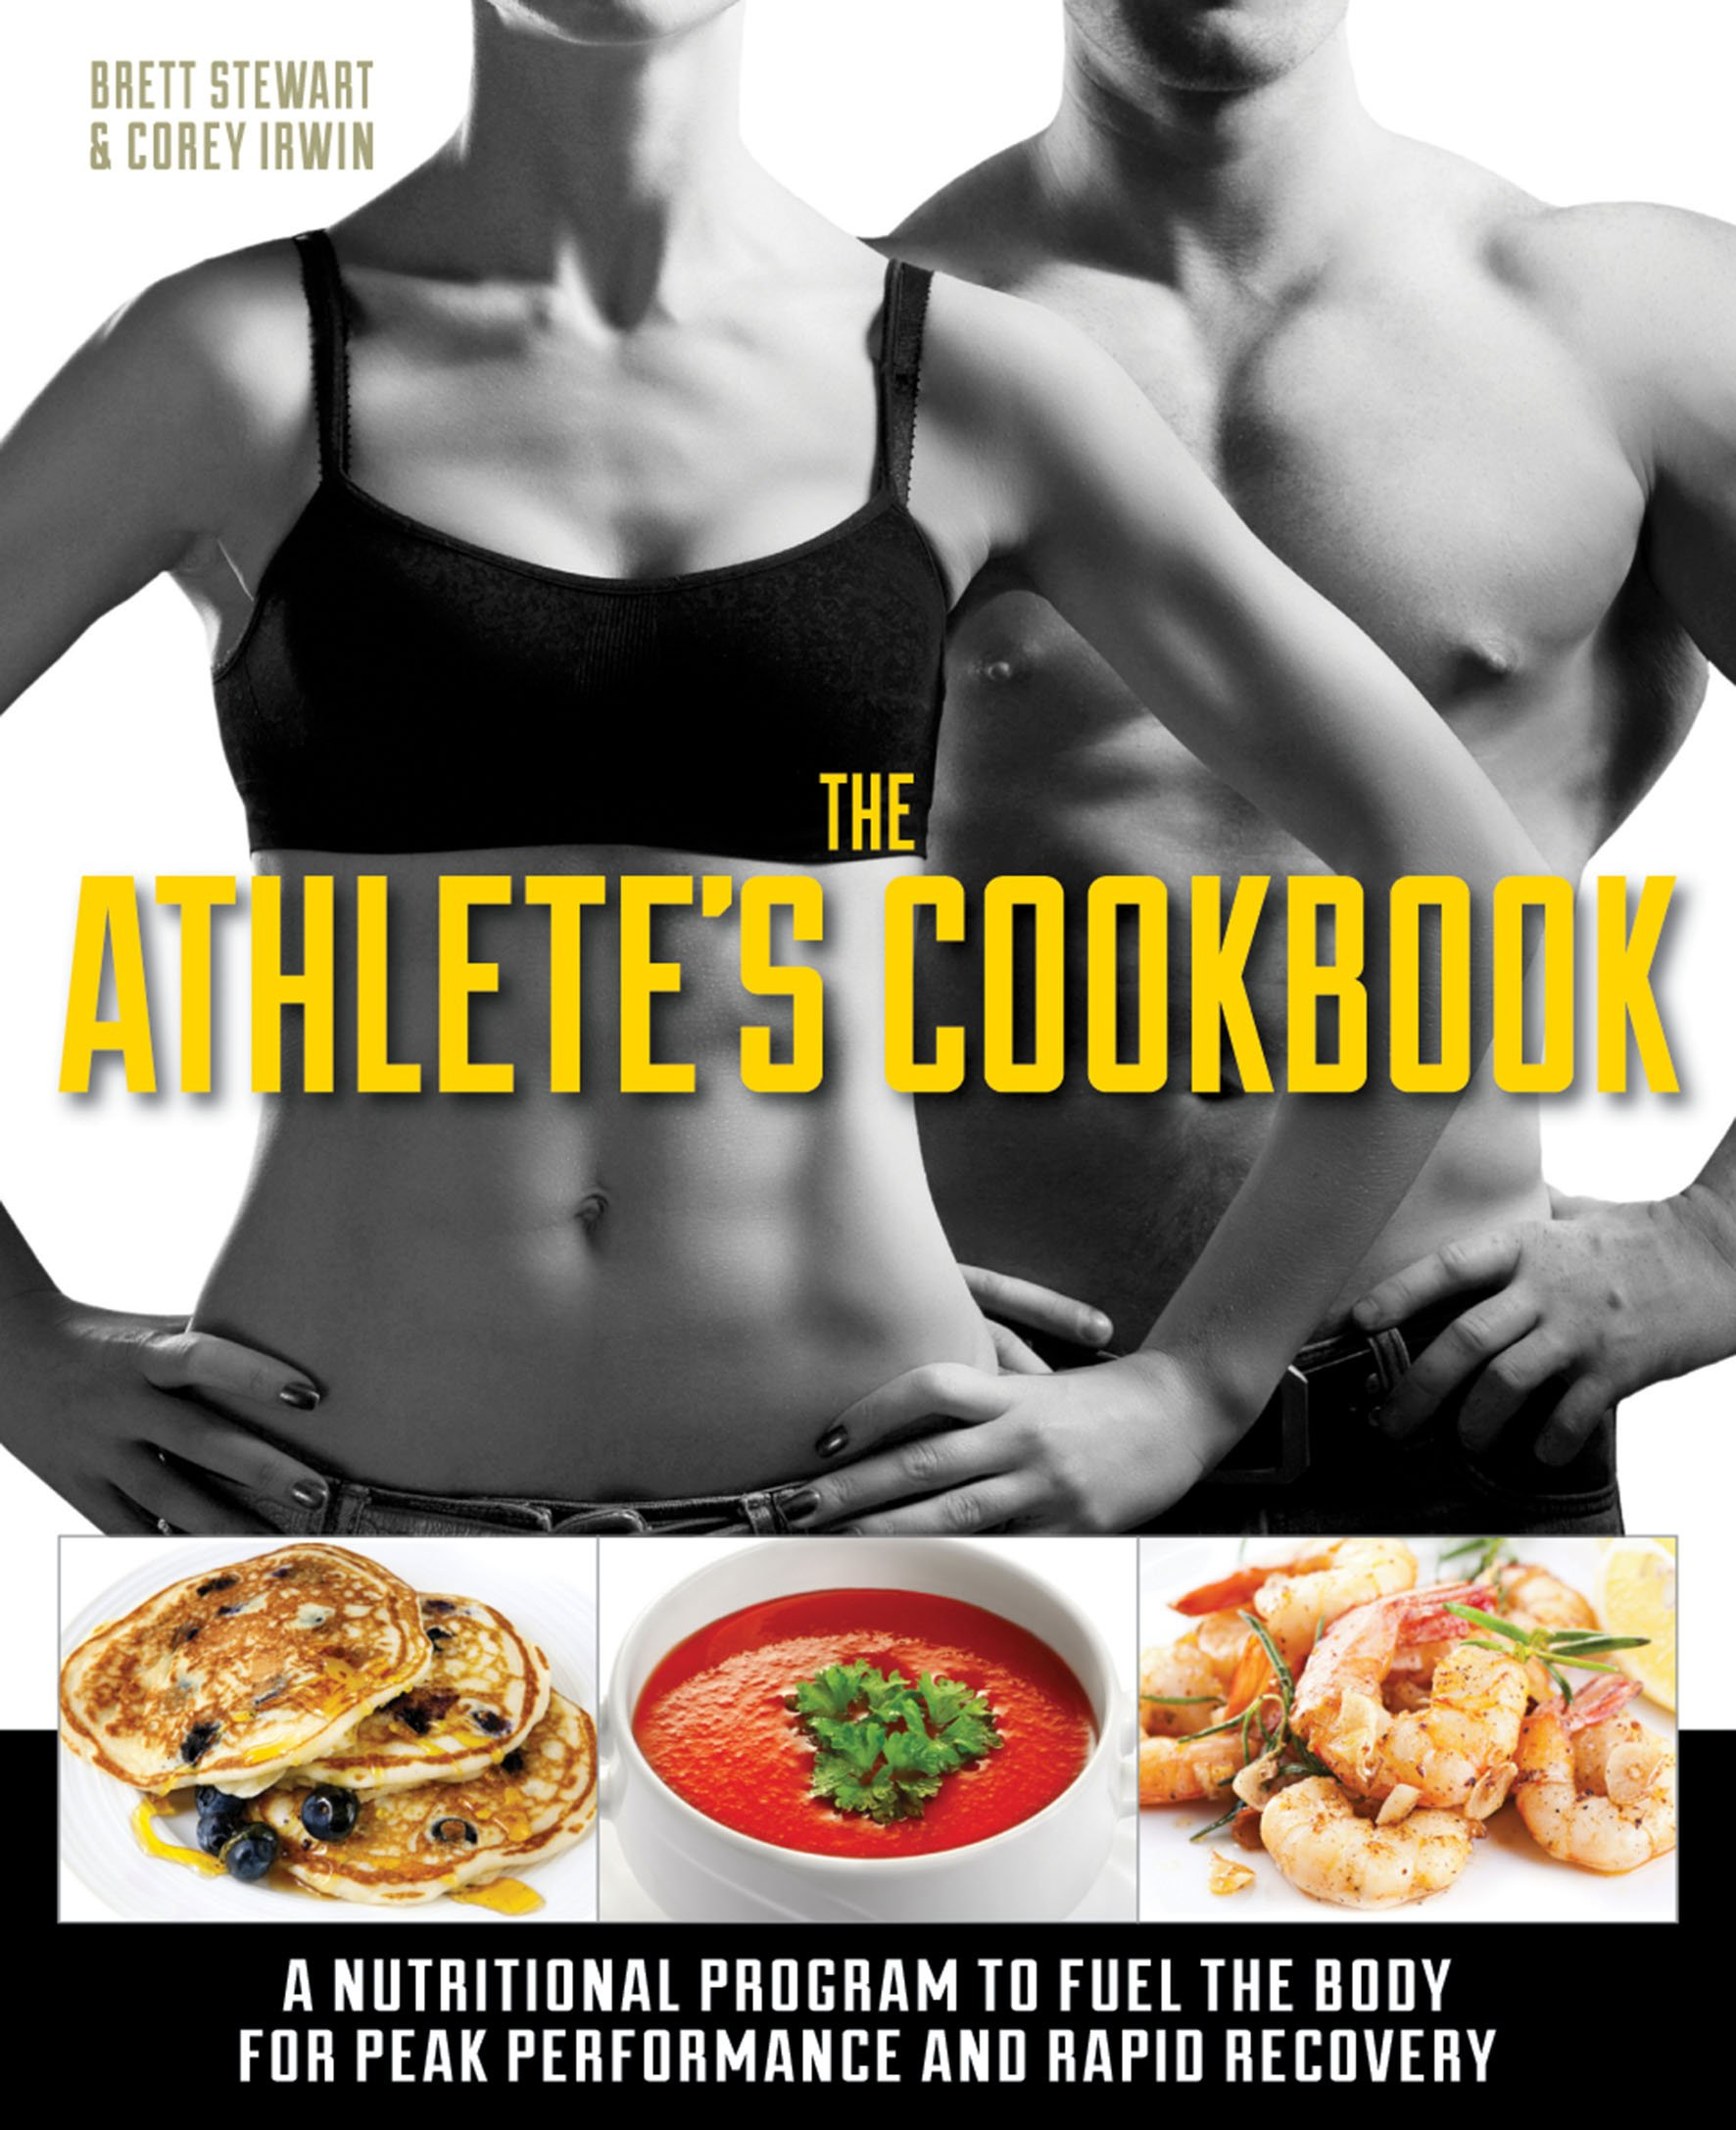 The athletes cookbook a nutritional program to fuel the body for the athletes cookbook a nutritional program to fuel the body for peak performance and rapid recovery brett stewart corey irwin 9781612432304 forumfinder Choice Image